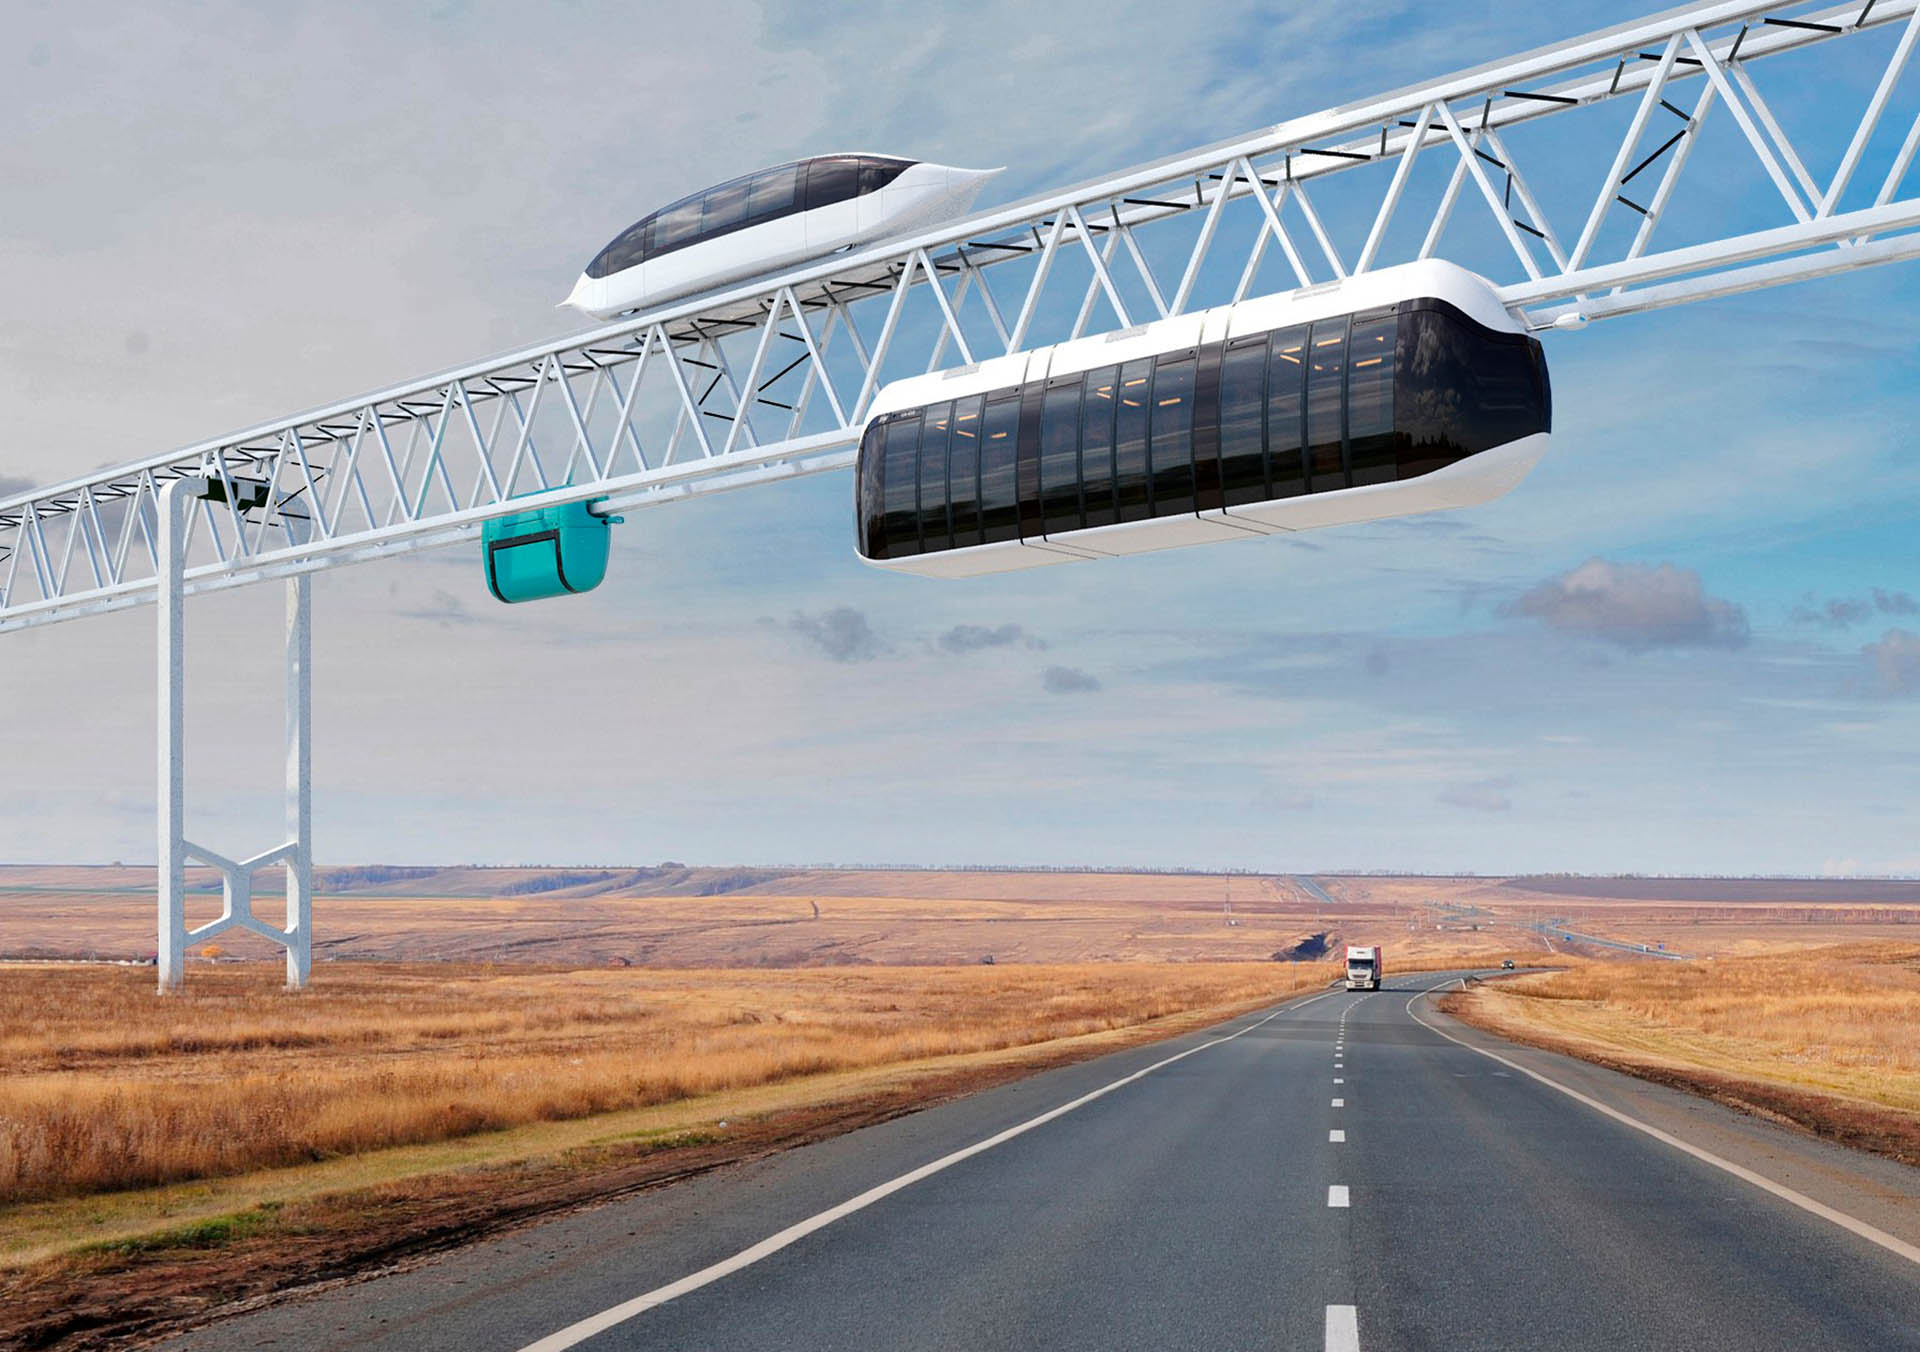 SkyWay for Northern Eurasia: Saving What's Left, Returning What's Possible